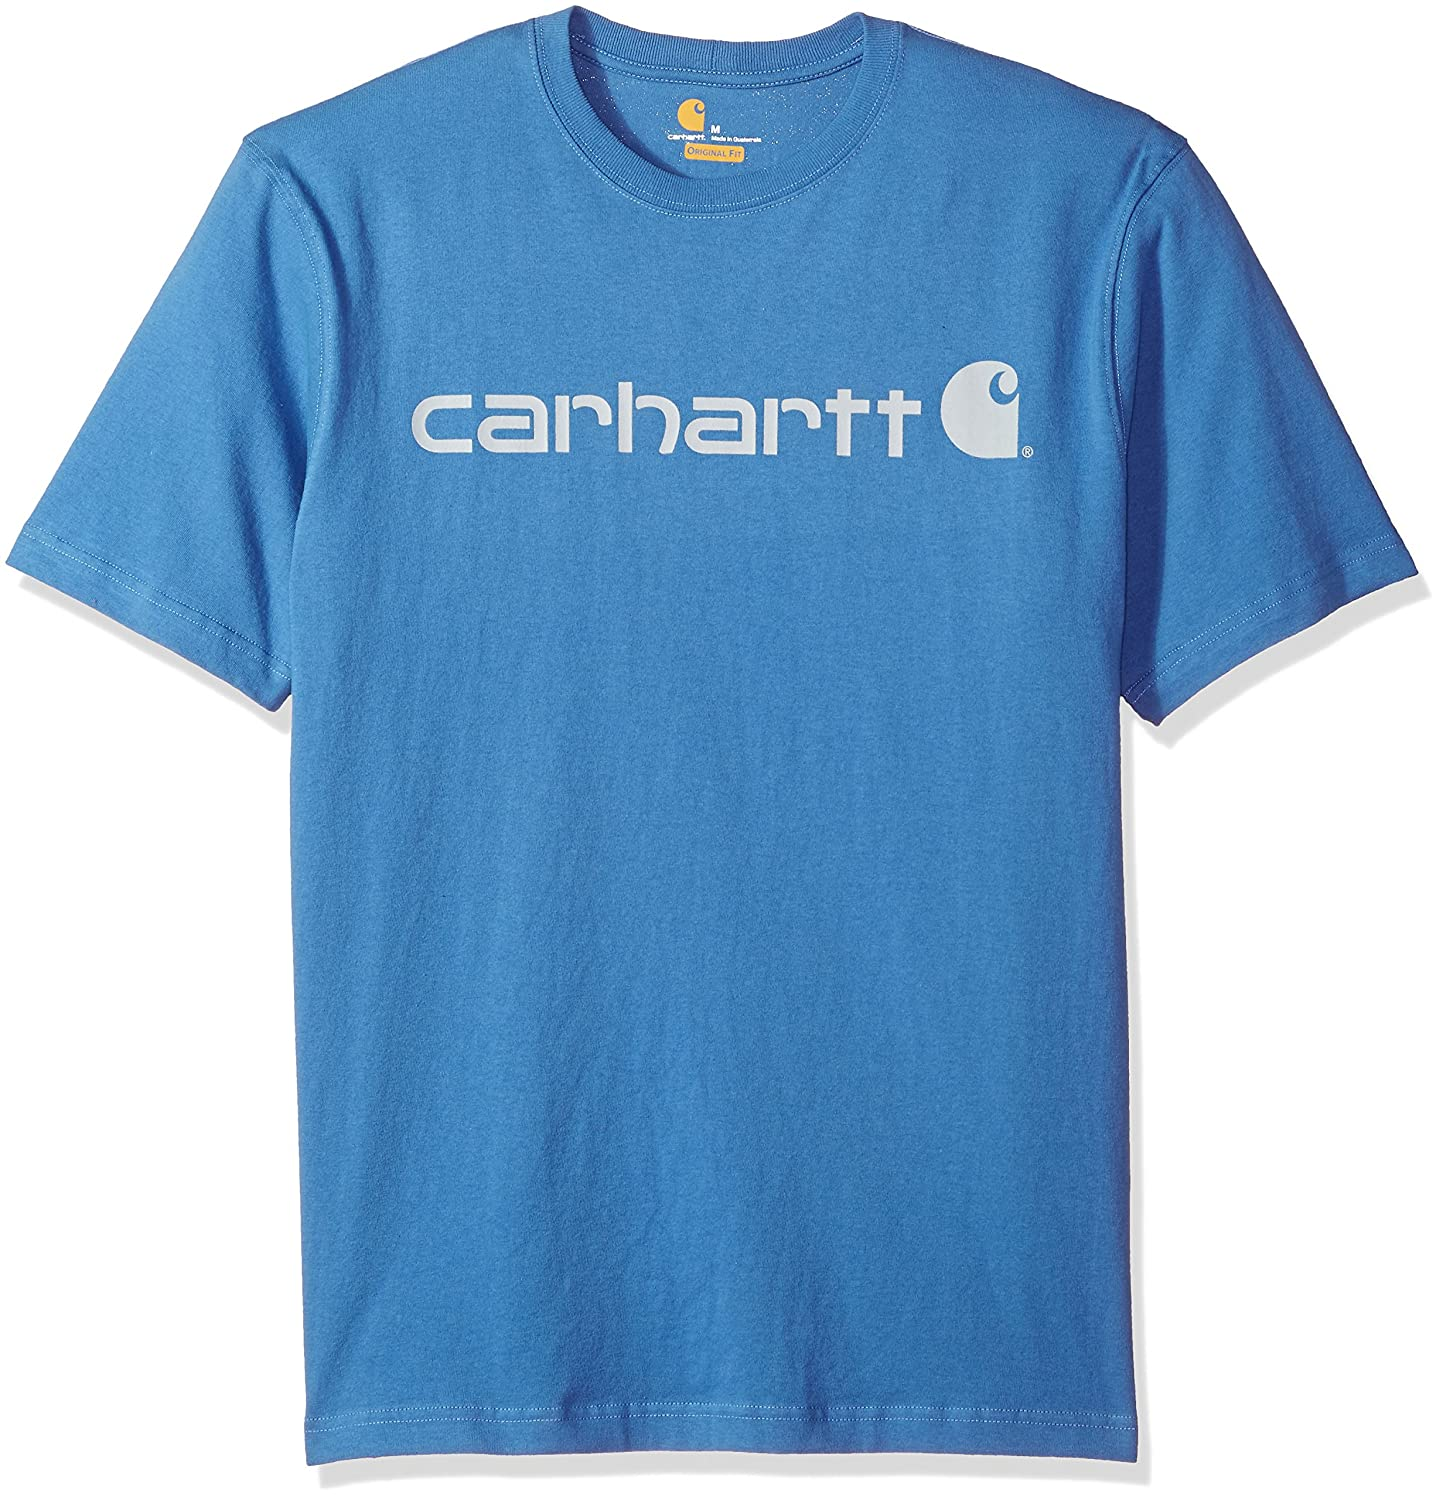 Carhartt Men's B&t Signature Logo Short-Sleeve Jersey T-Shirt K195